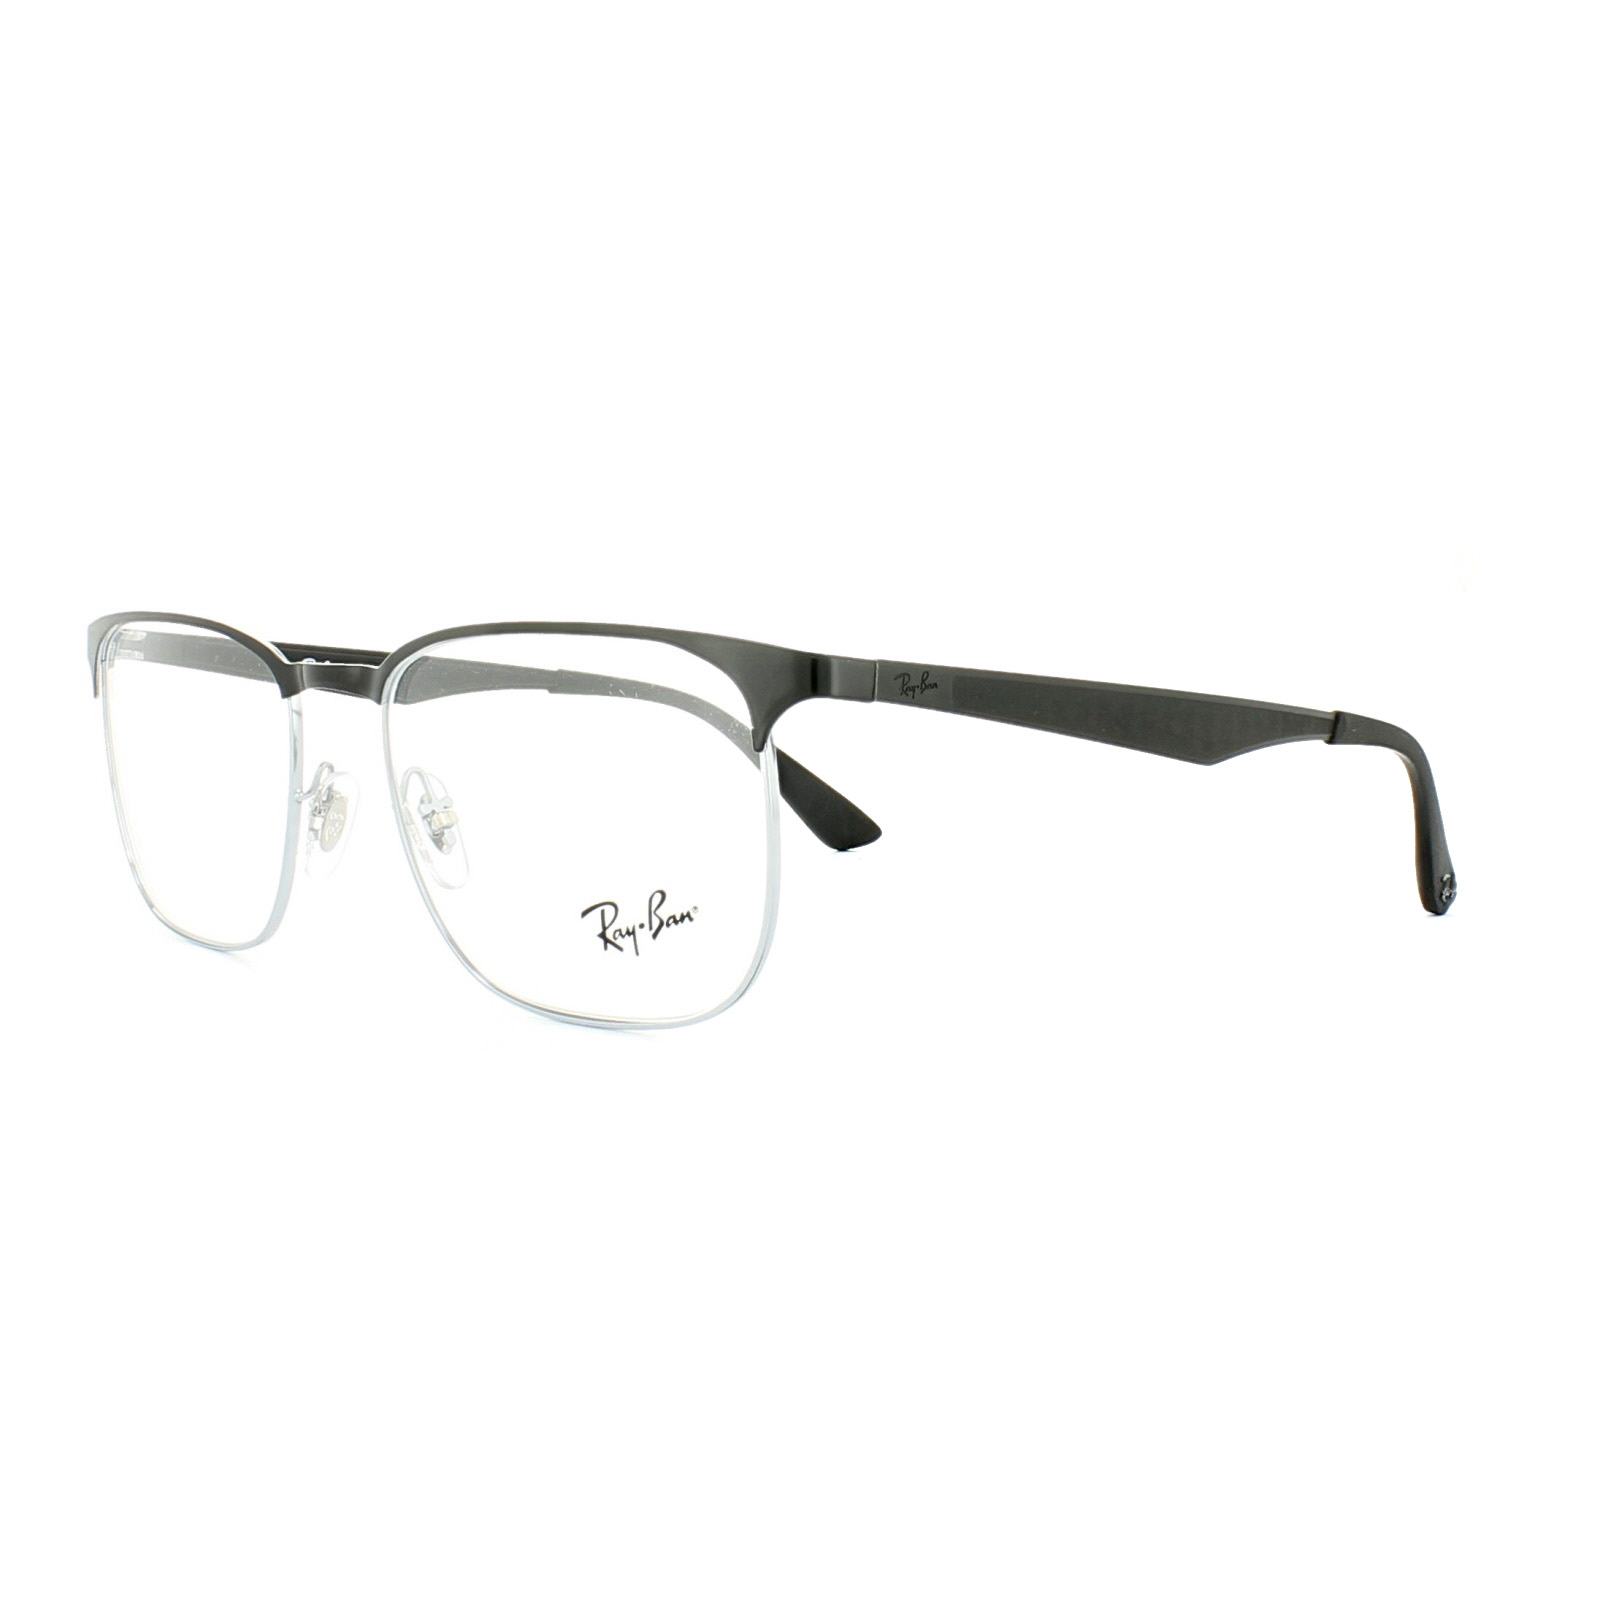 d8501fdee7 Sentinel Ray-Ban Glasses Frames 6363 2861 Silver Top Black